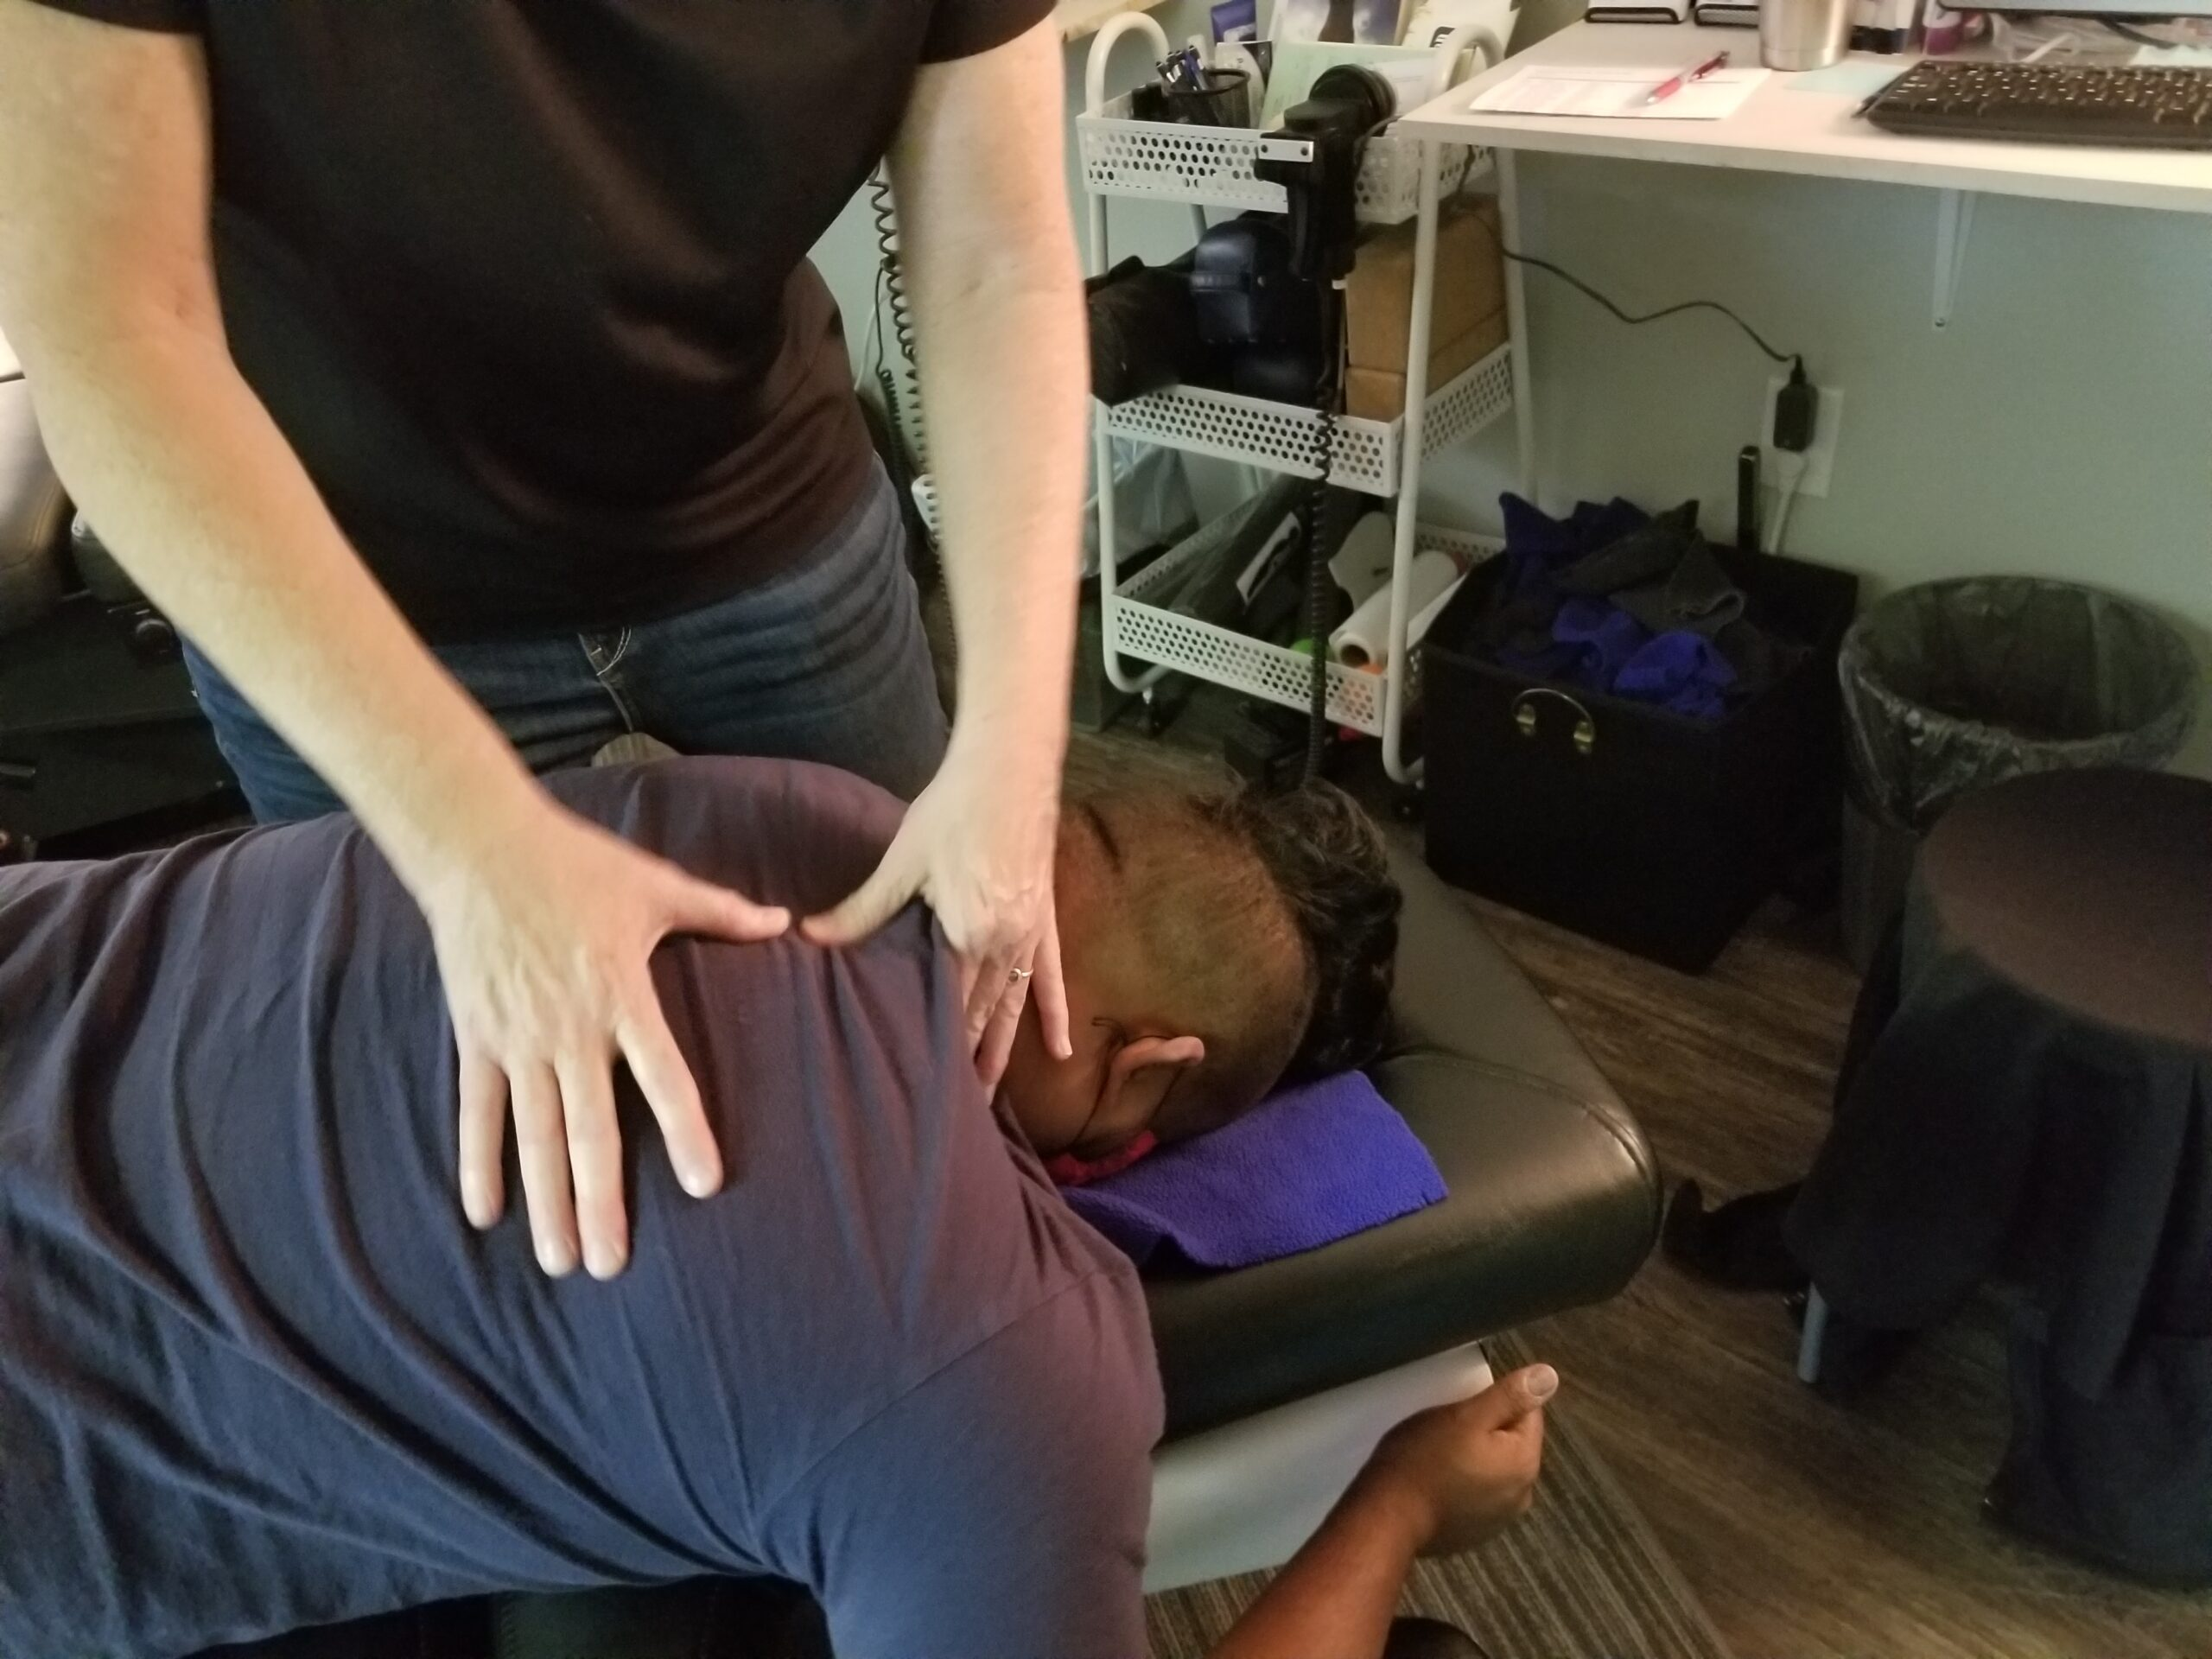 Why Am I Sore After Chiropractic Adjustment?